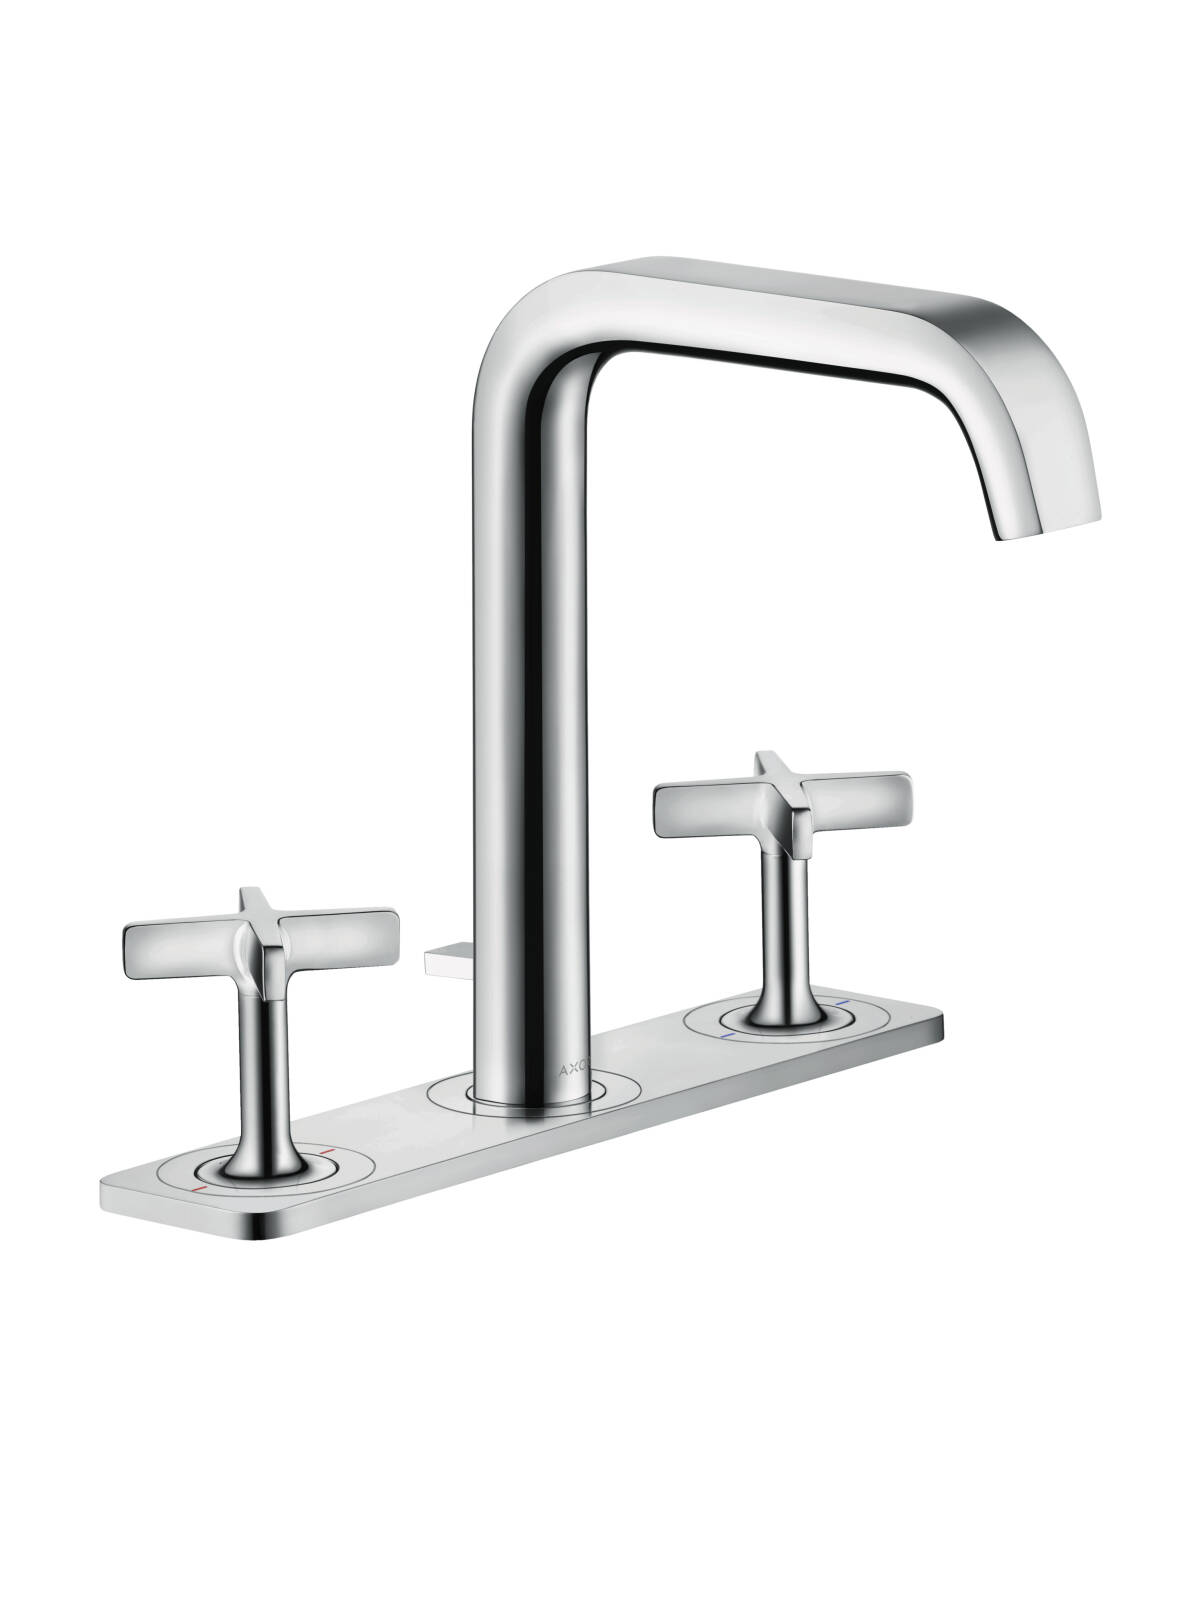 3-hole basin mixer 170 with plate and pop-up waste set, Chrome, 36116000